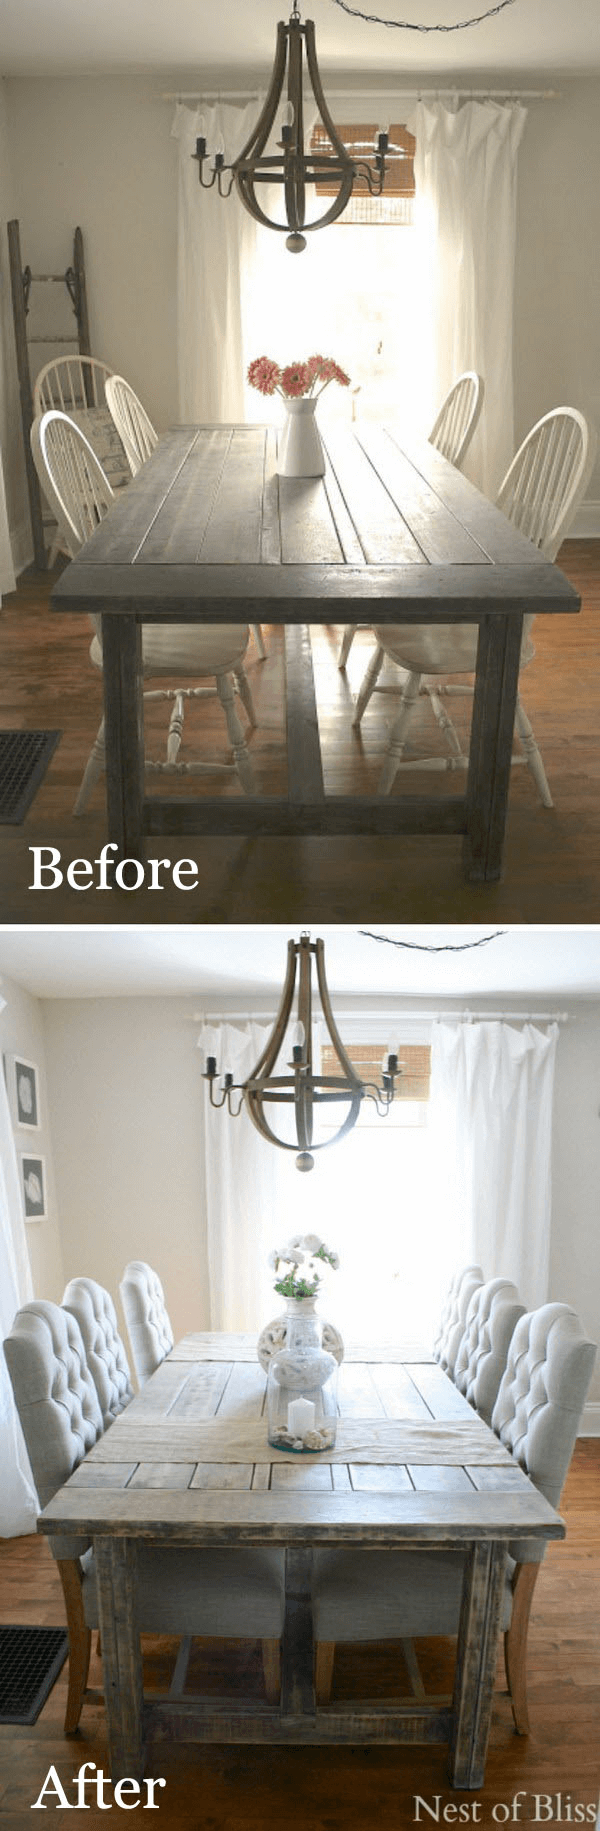 Simple dining table makeover with change the chairs before and after